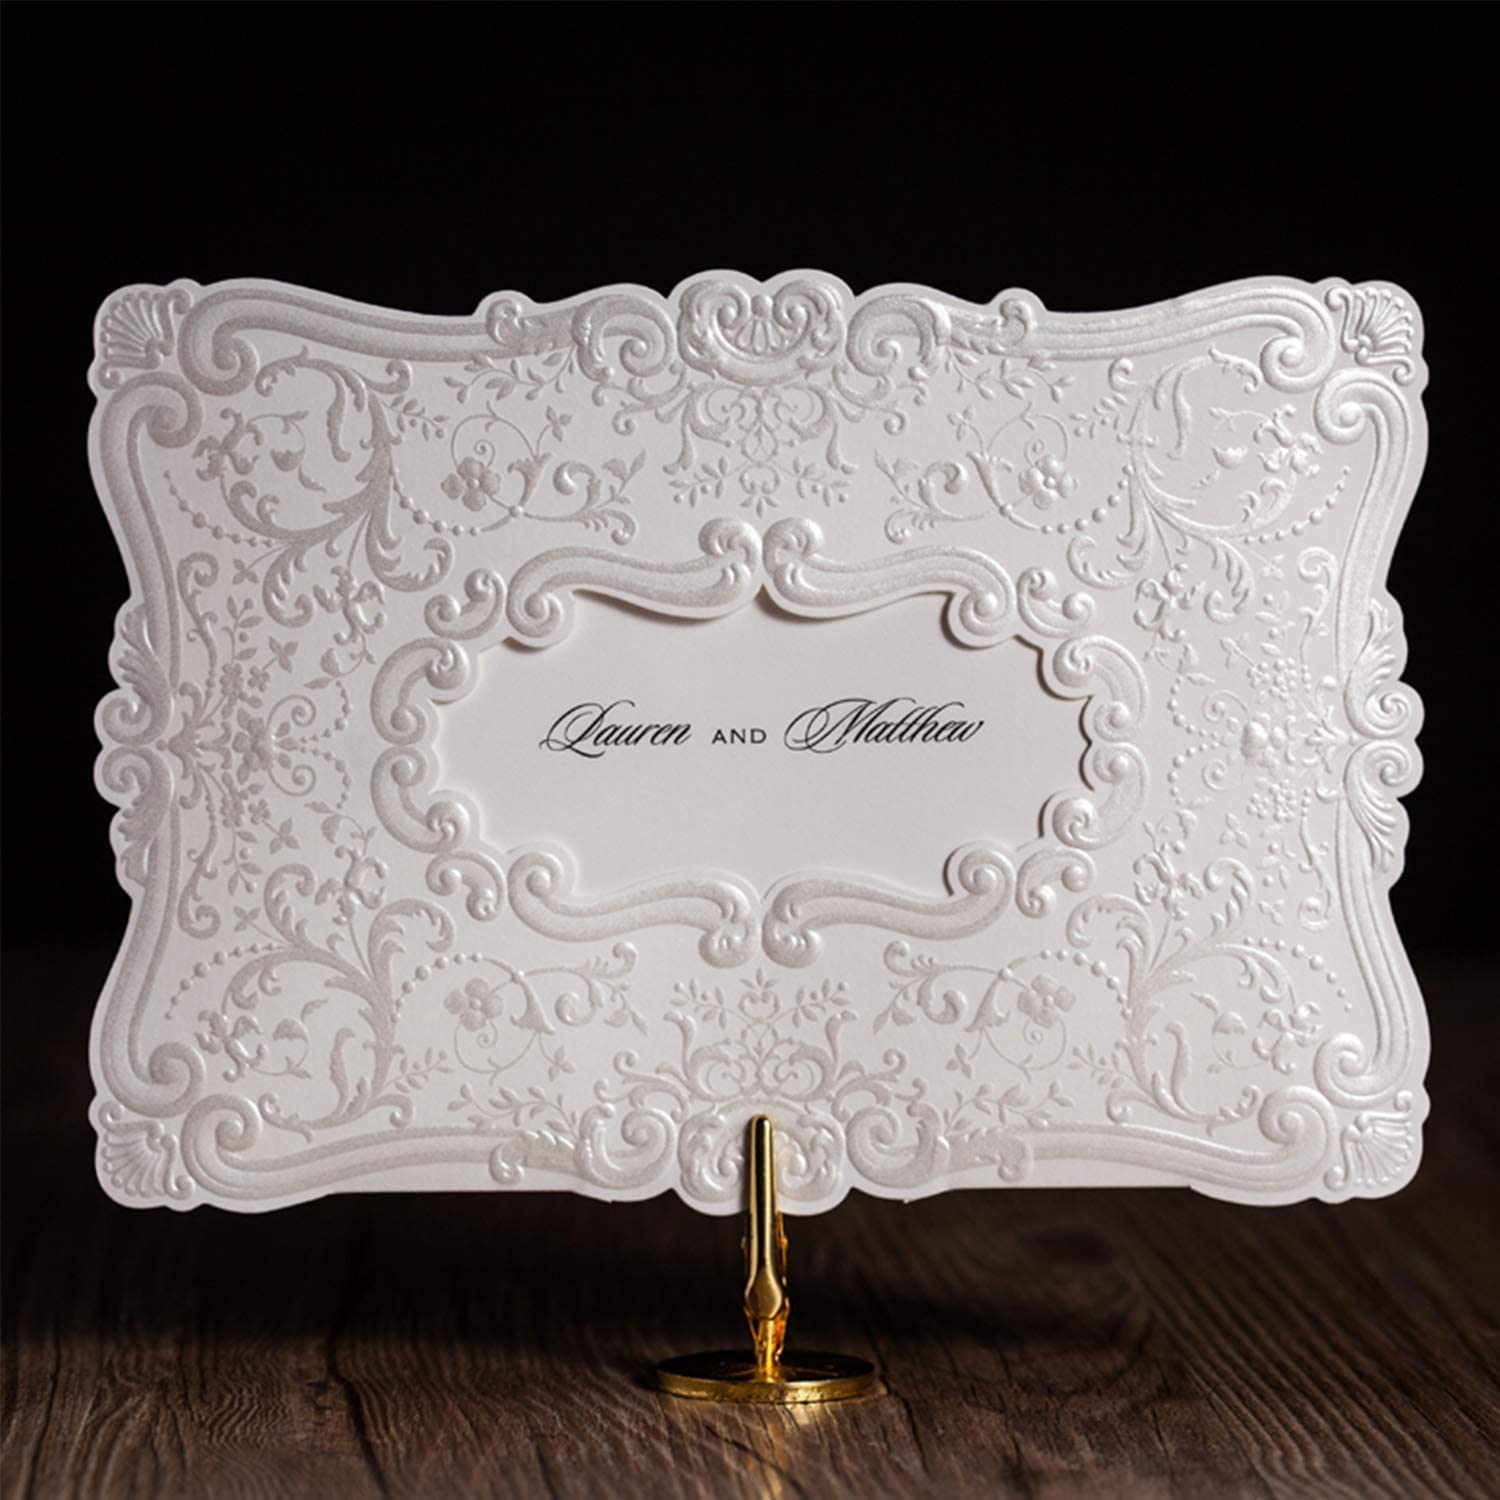 CJJC Personality Creative Customized Handmade Wedding Invitation Red Palace Style Invites Ideal for Wedding Party Banquet Use